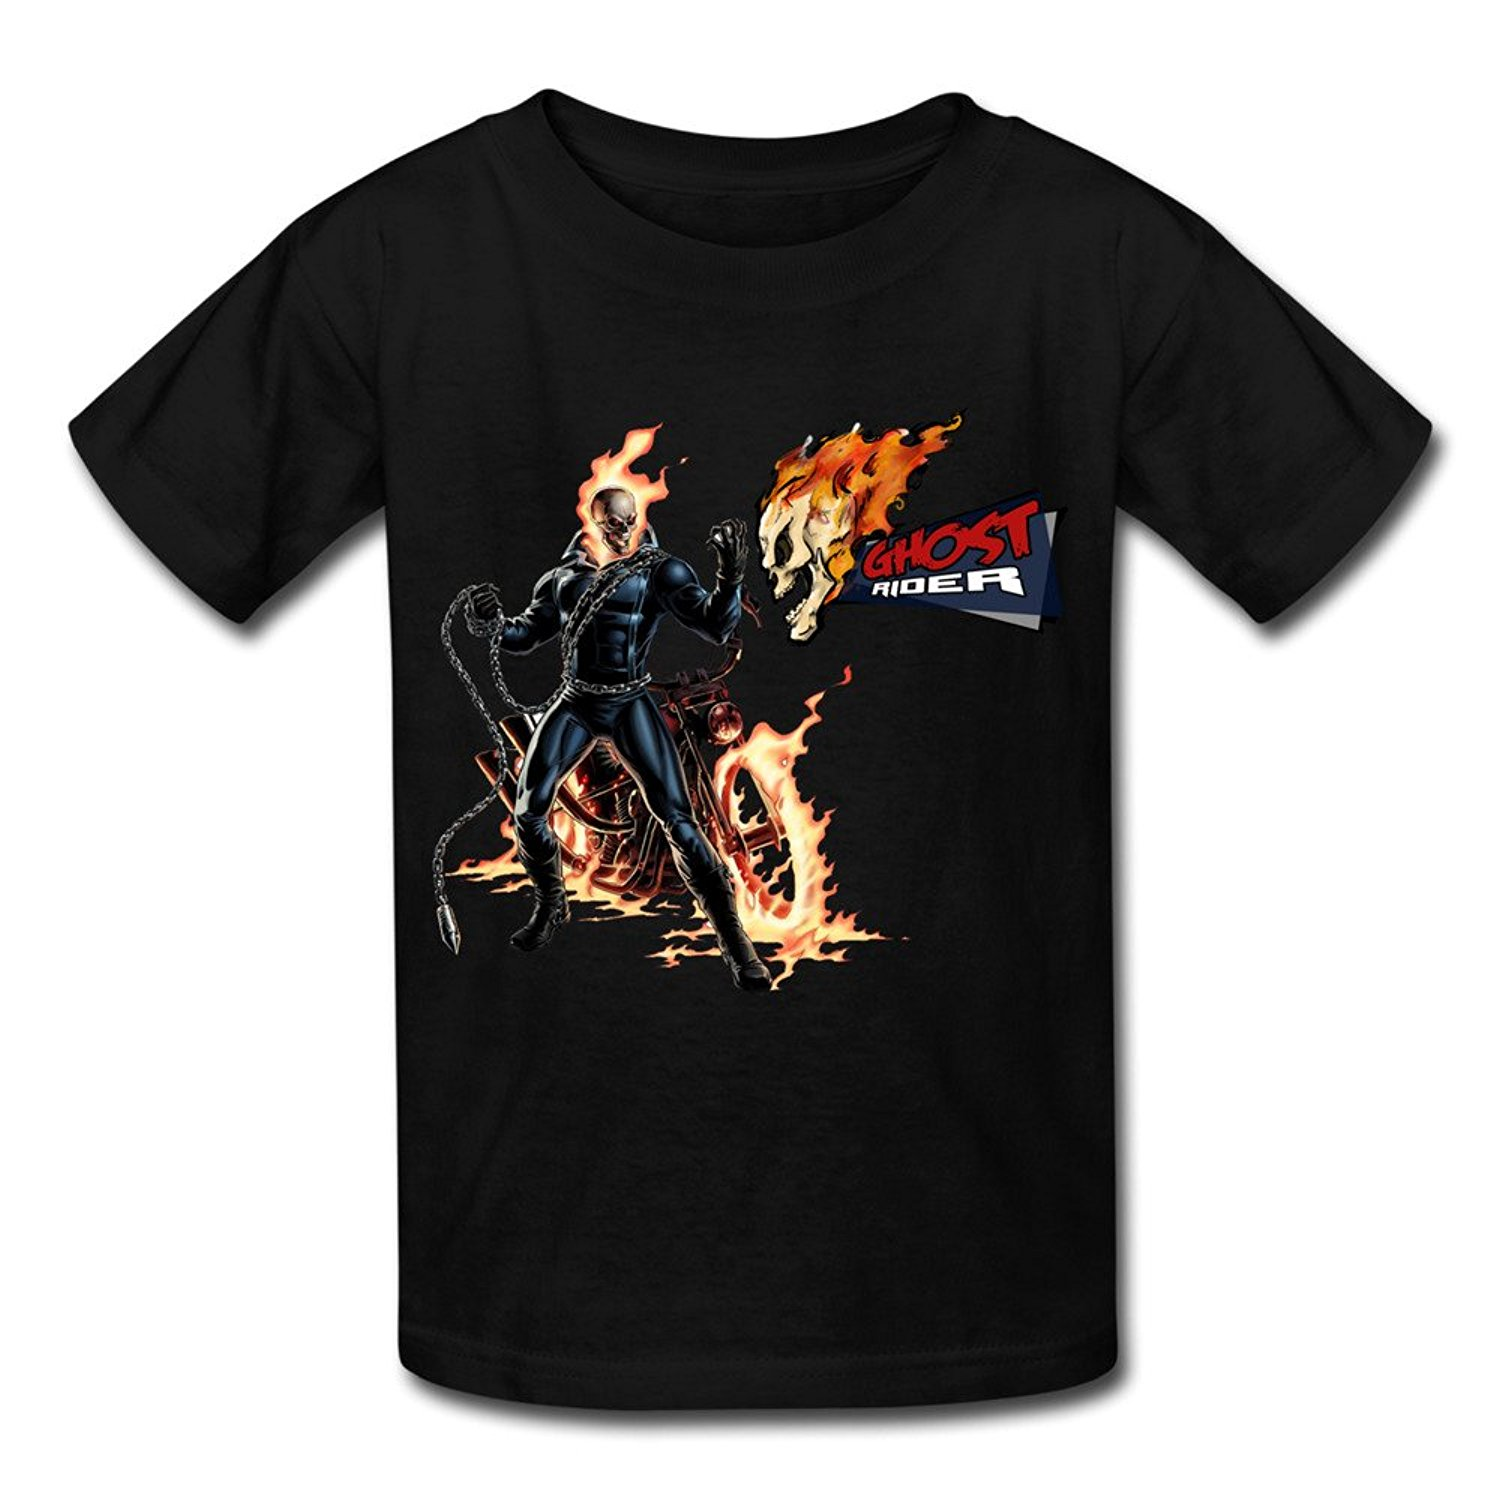 Supernatural Ghost Rider Big Boys & Girls Cotton T Shirt Black Men Clothing Plus Size S M L Xl Xxl Hipster